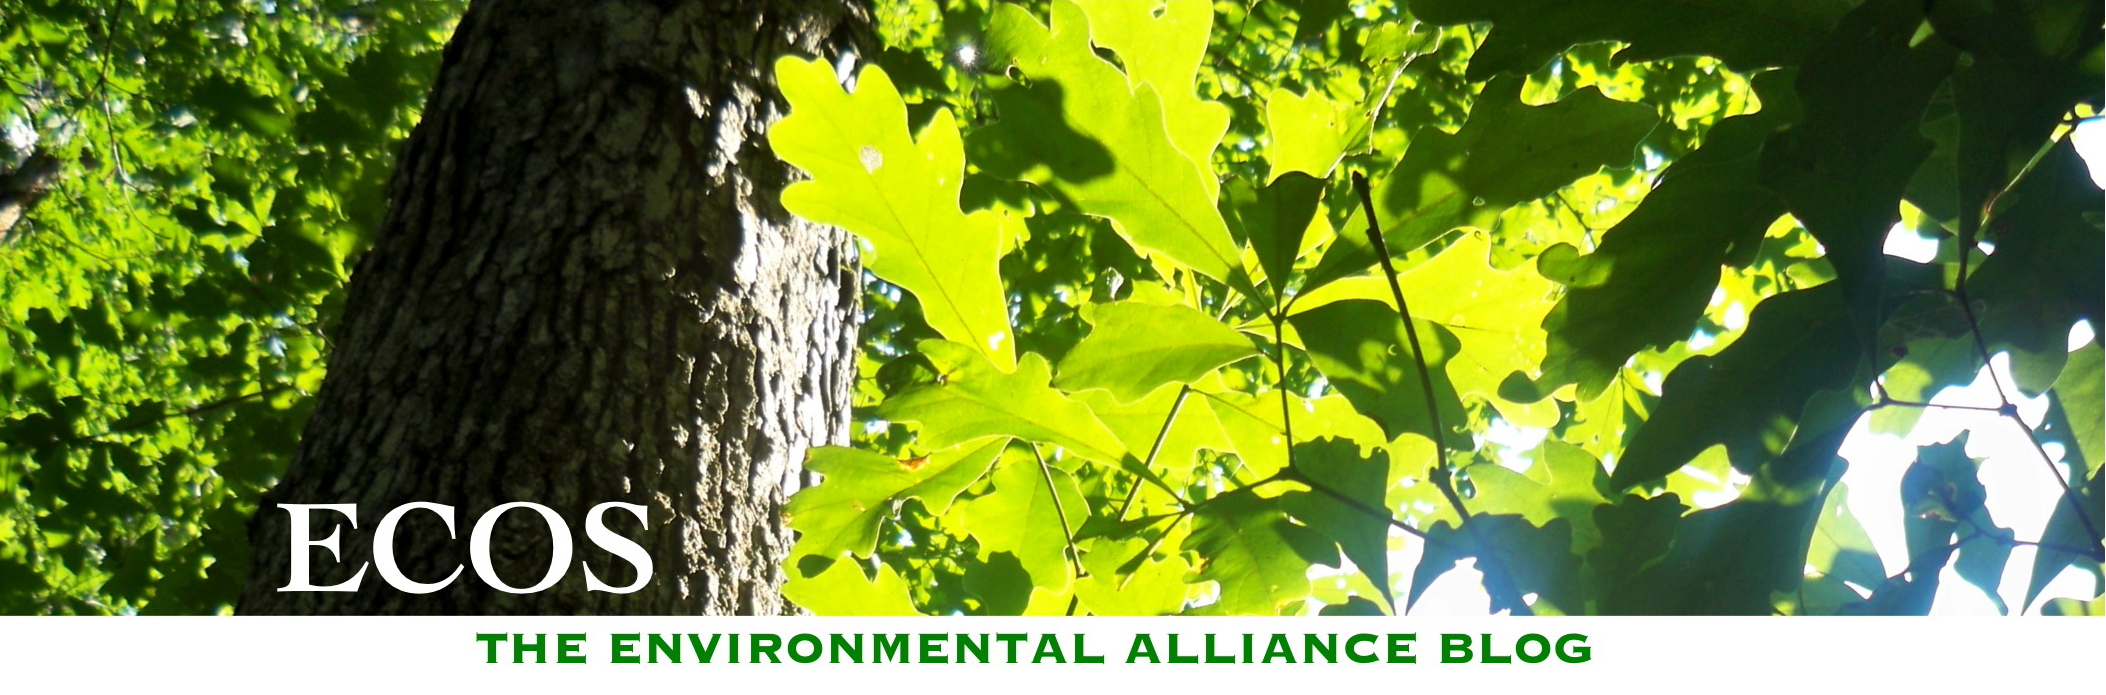 Ecos: The Environmental Alliance Blog